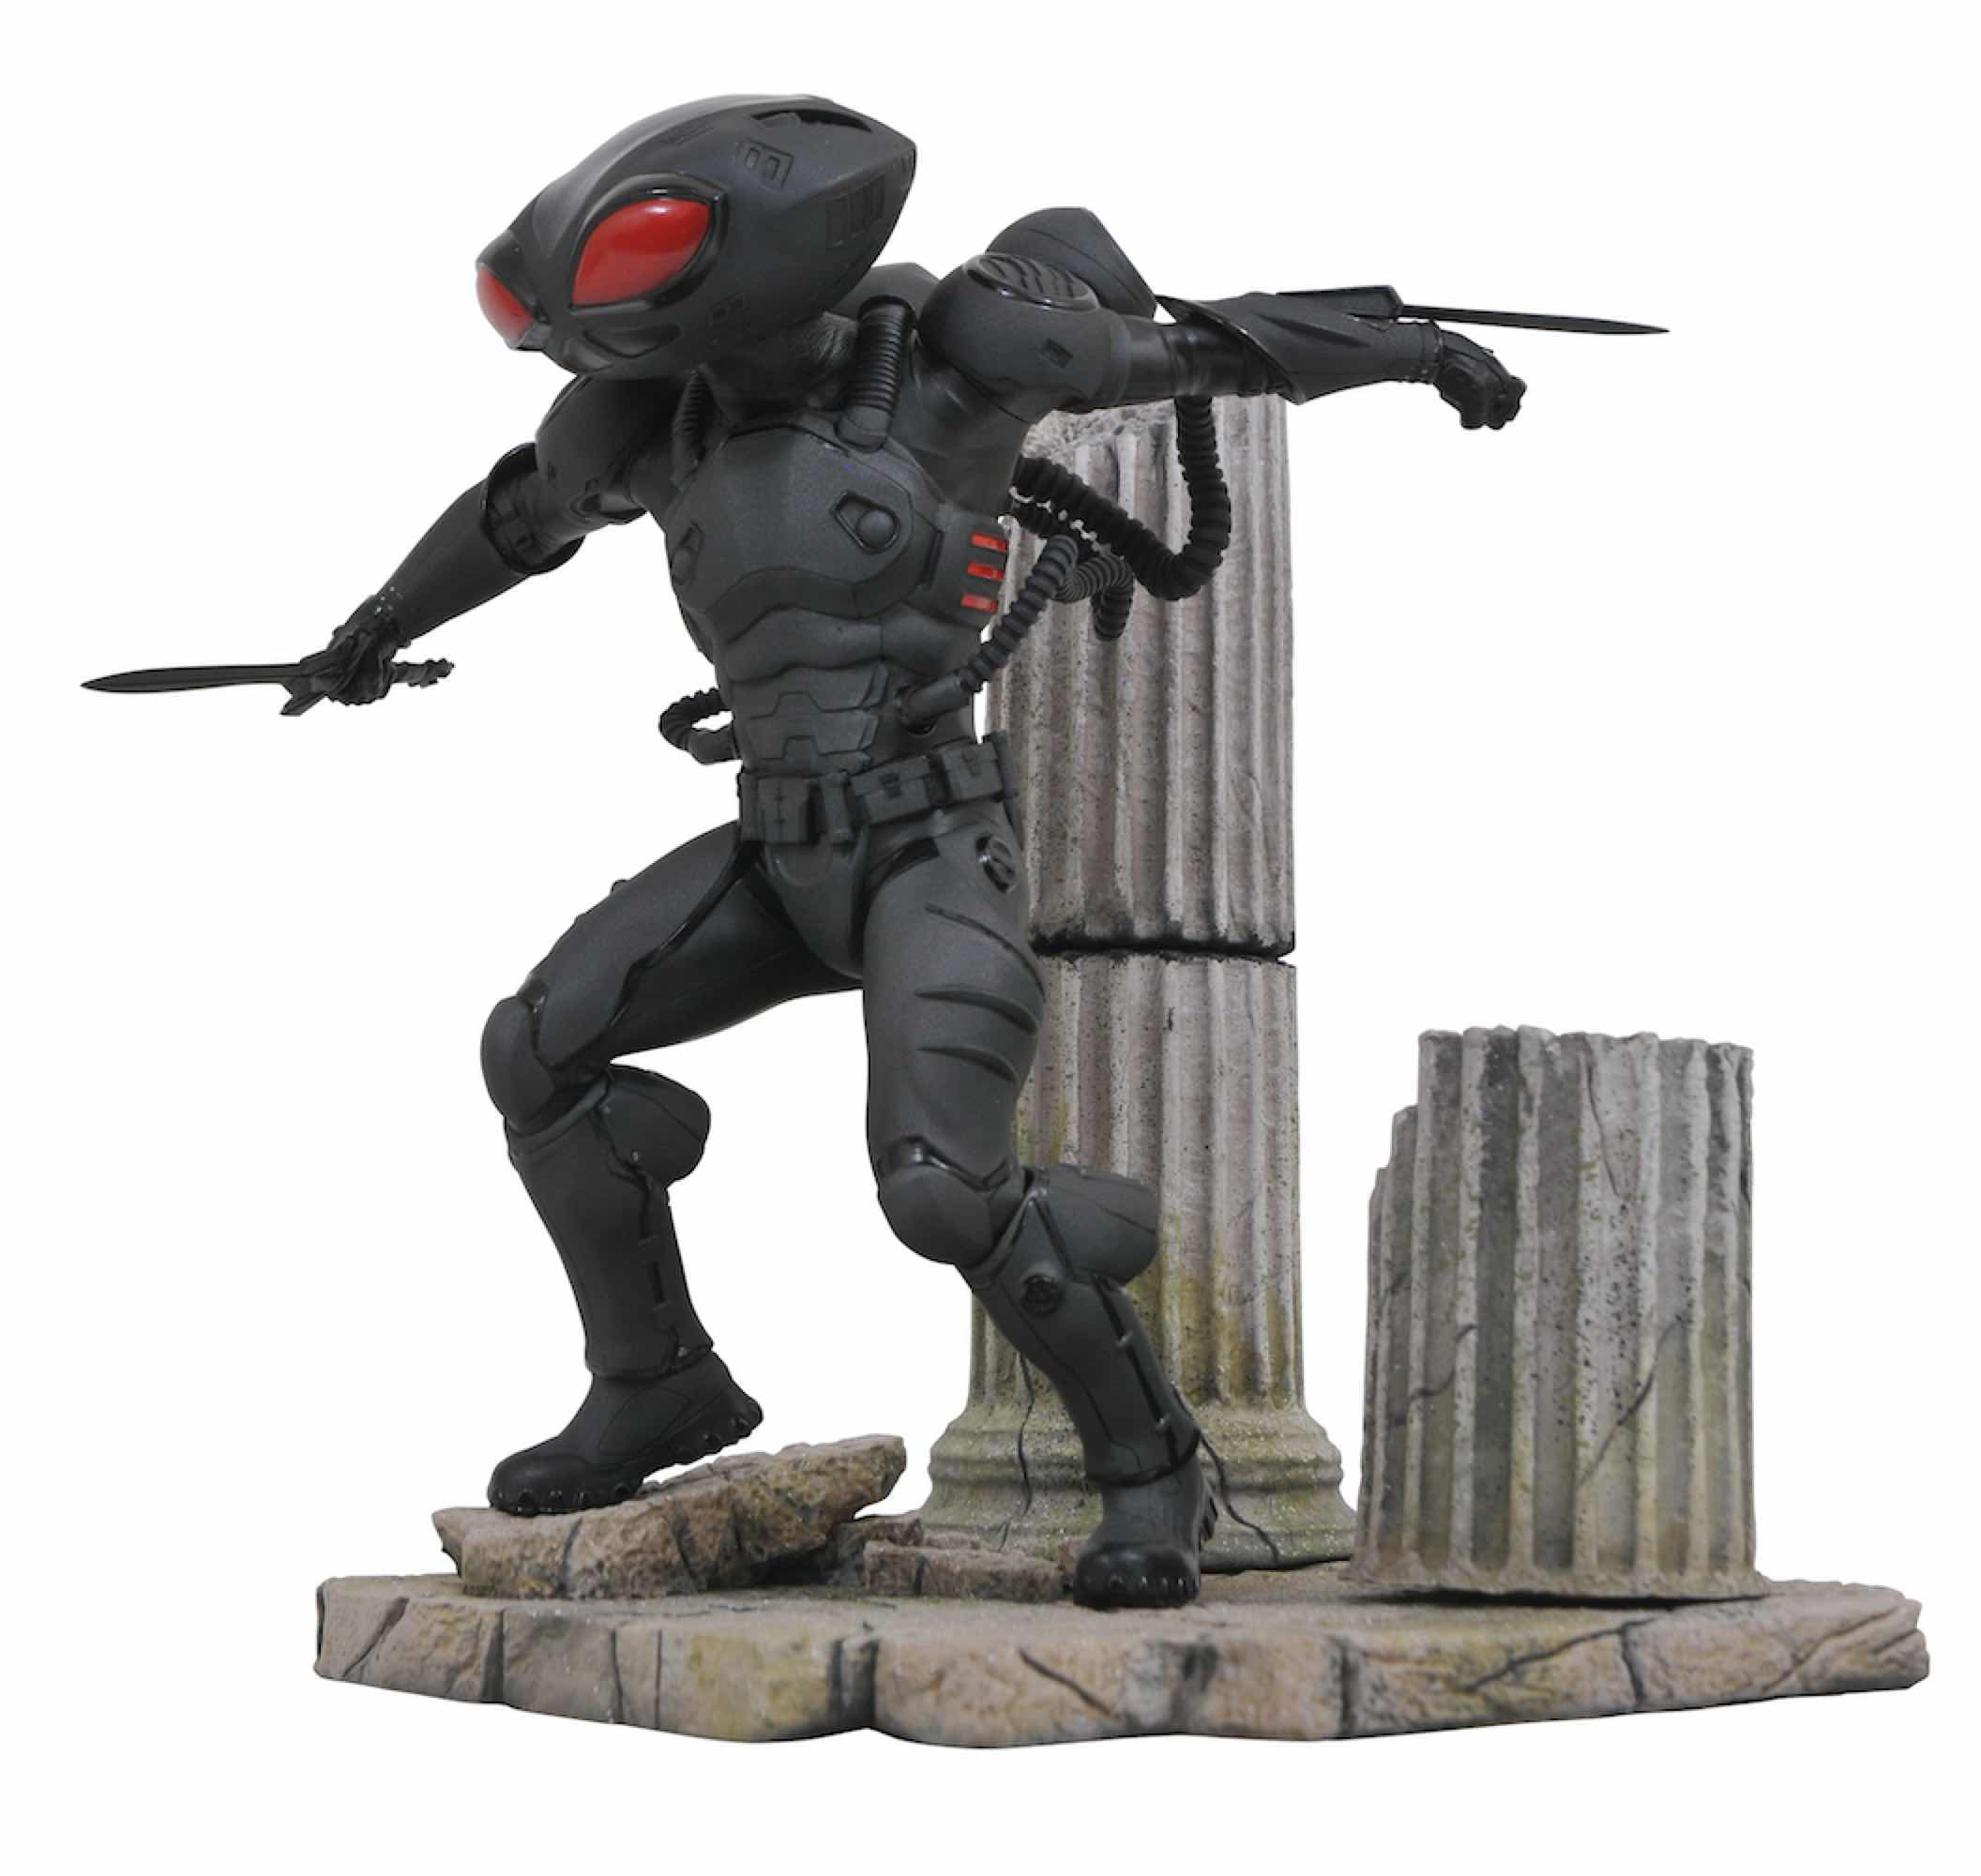 BLACK MANTA PVC DIORAMA ESTATUA 23 CM DC COMIC GALLERY AQUAMAN MOVIE